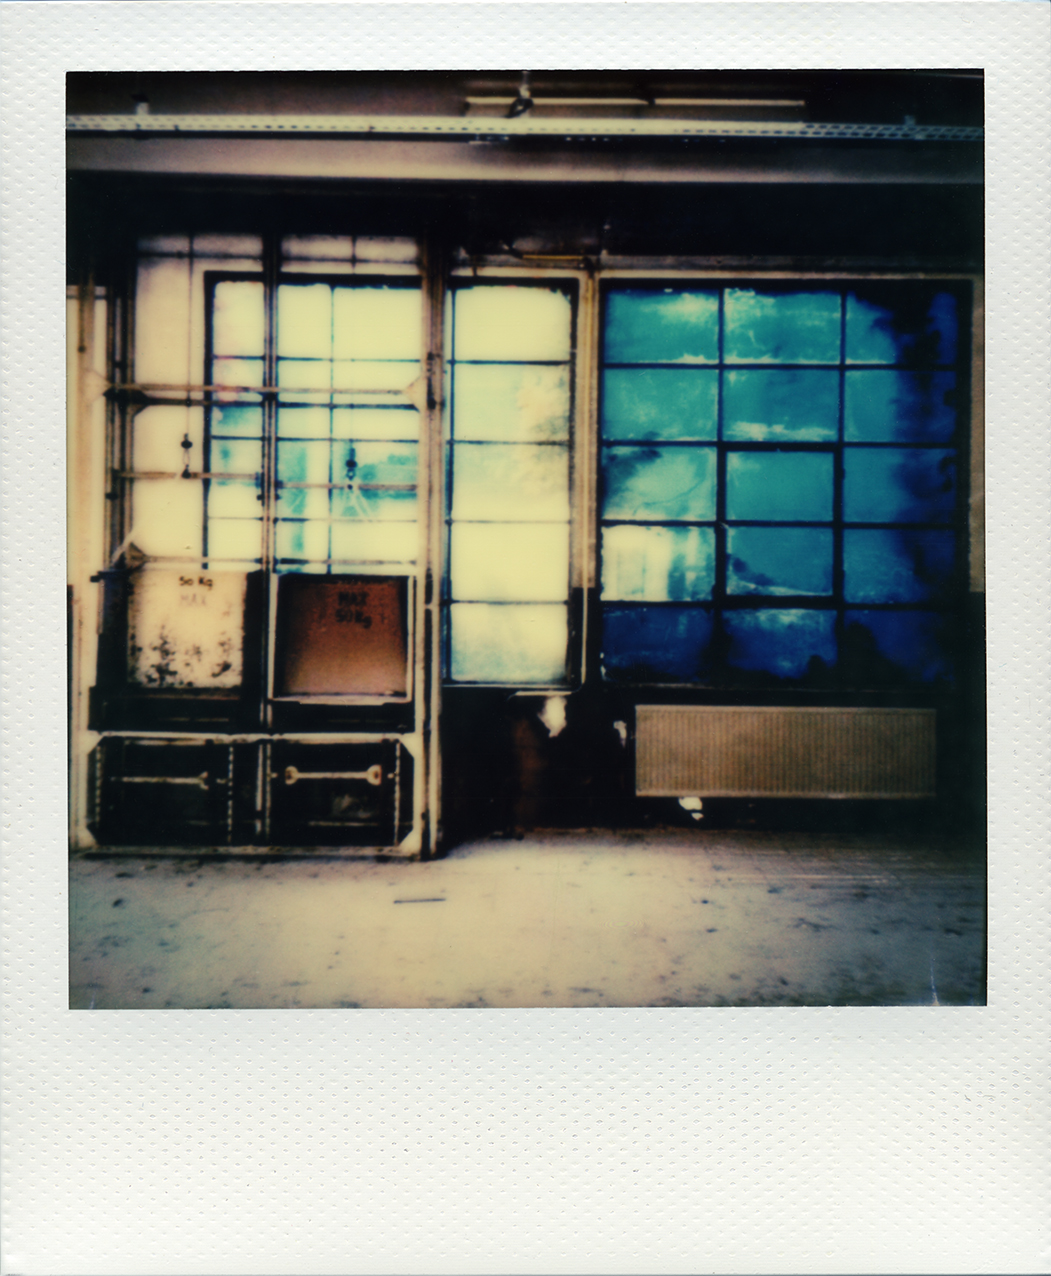 Pola windows 04